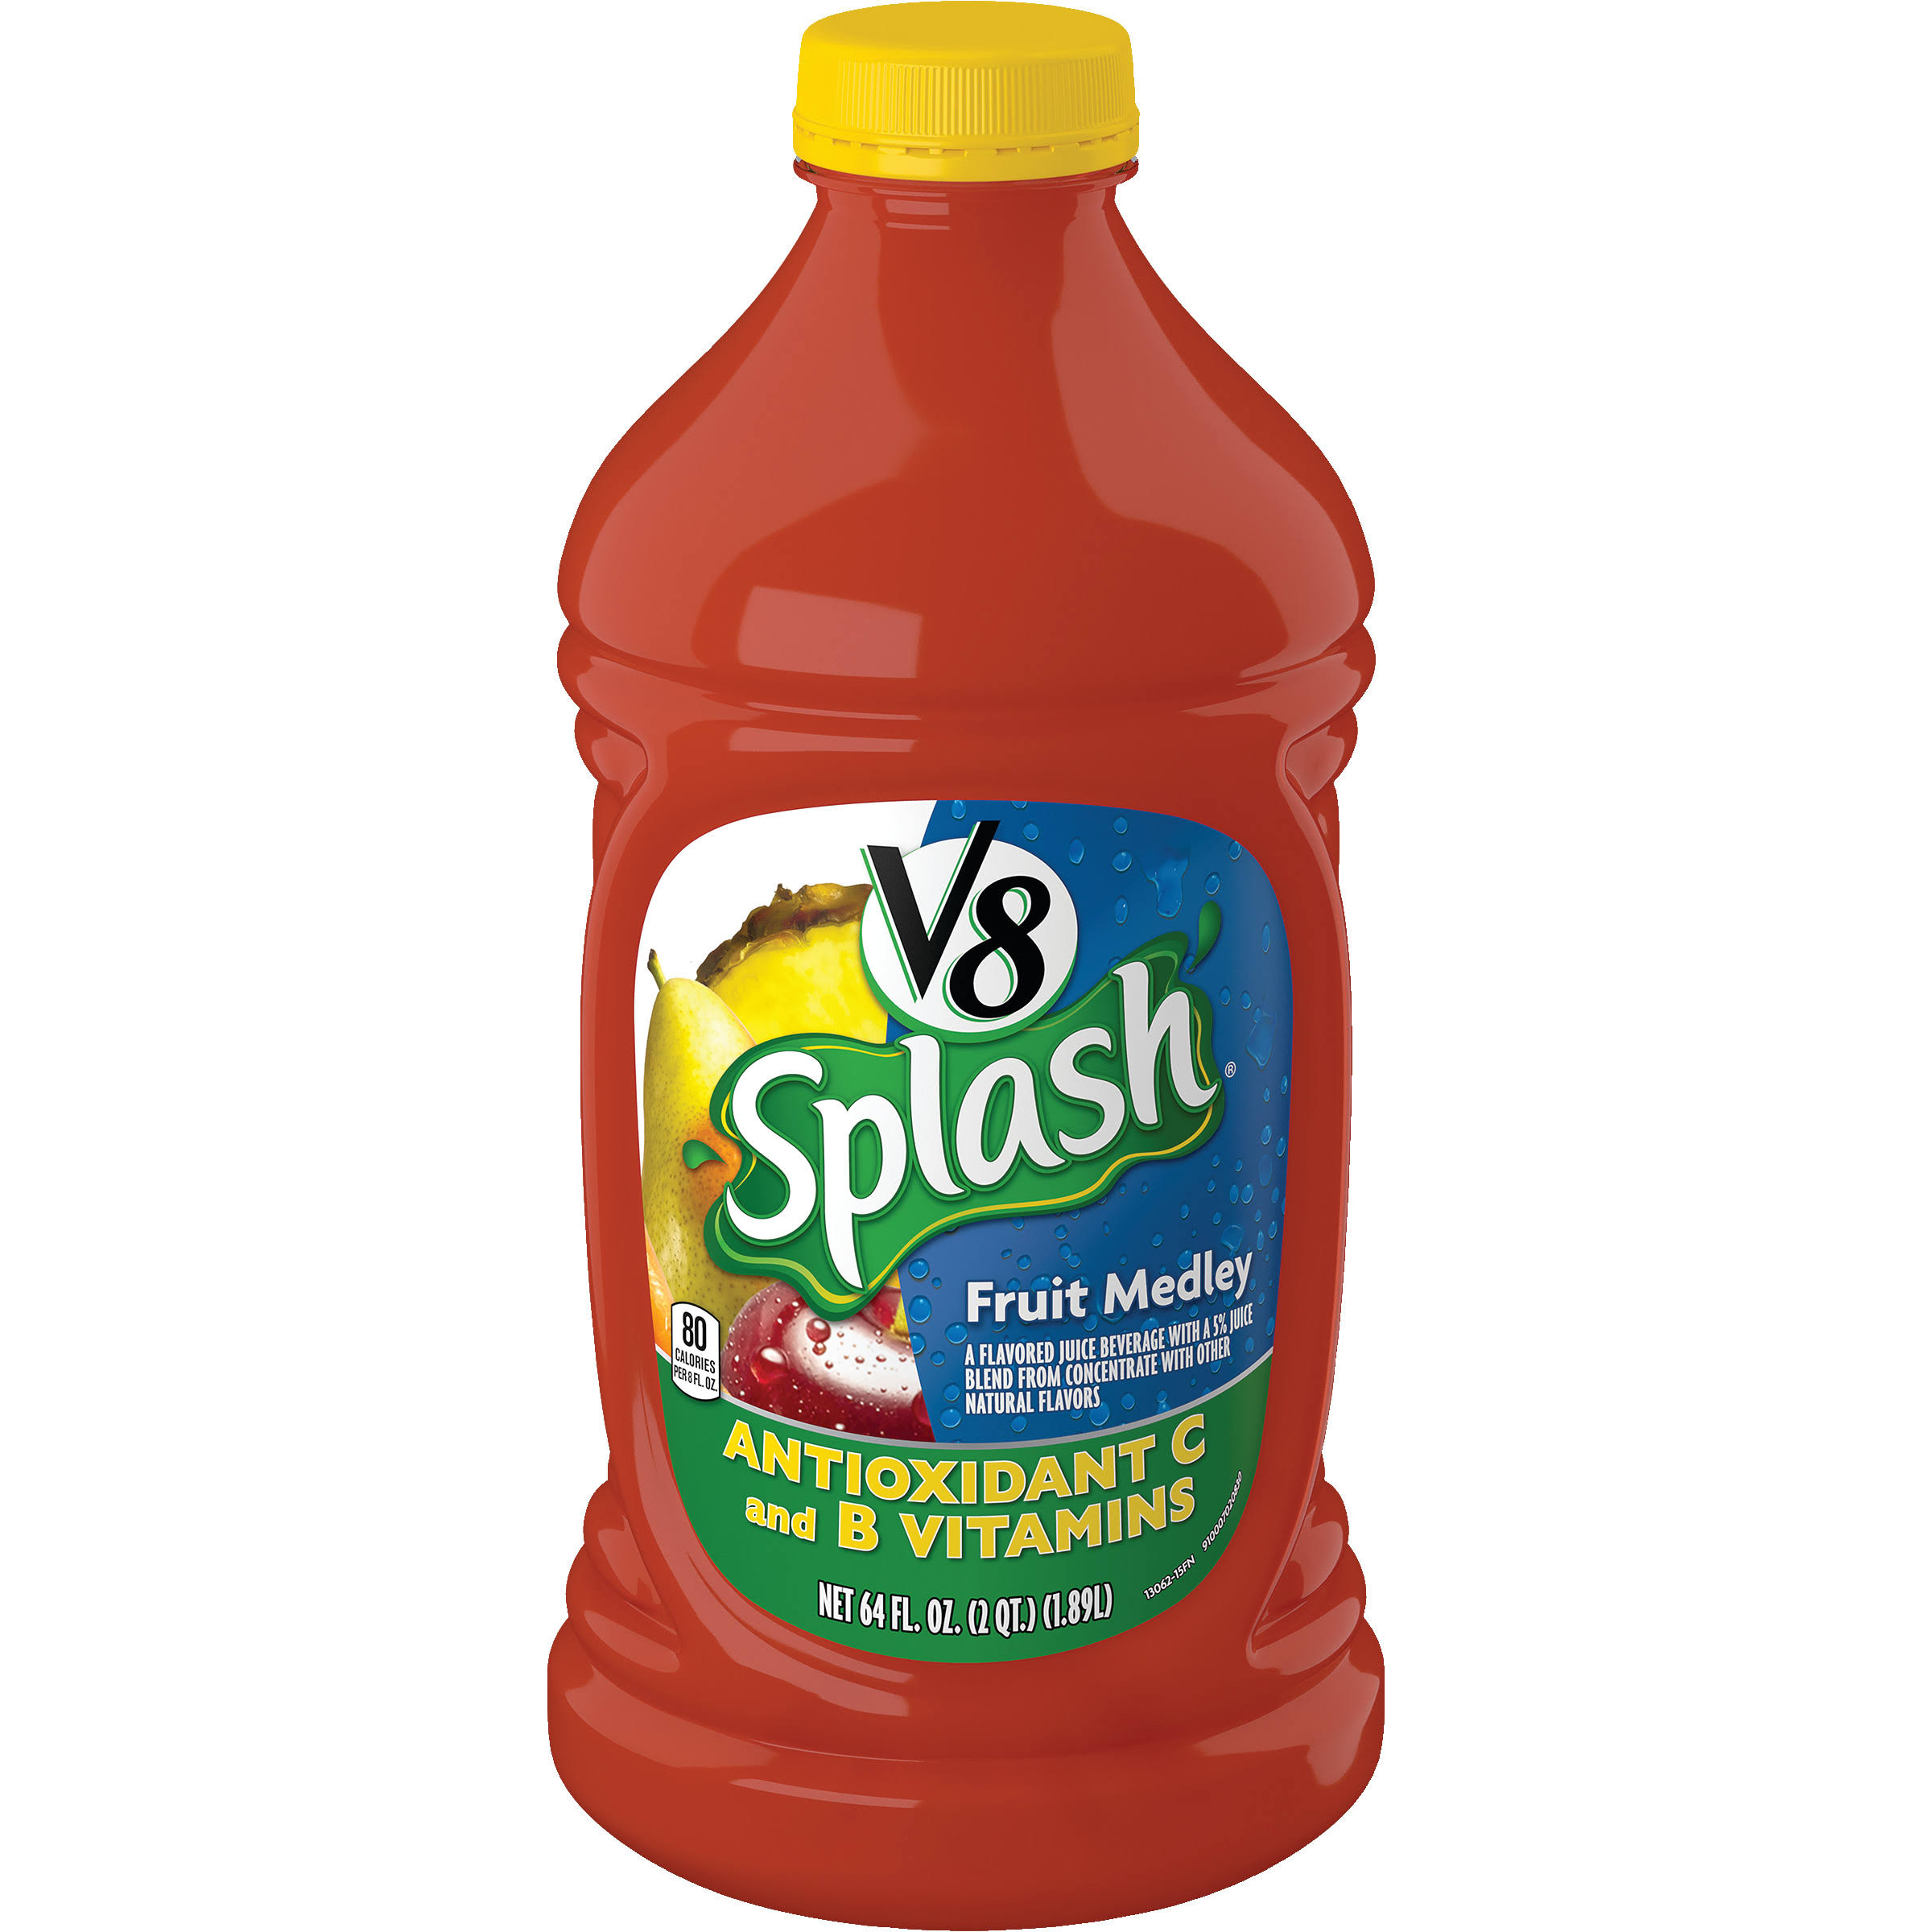 V8 Splash Drink - Fruit Medley, 1.89l